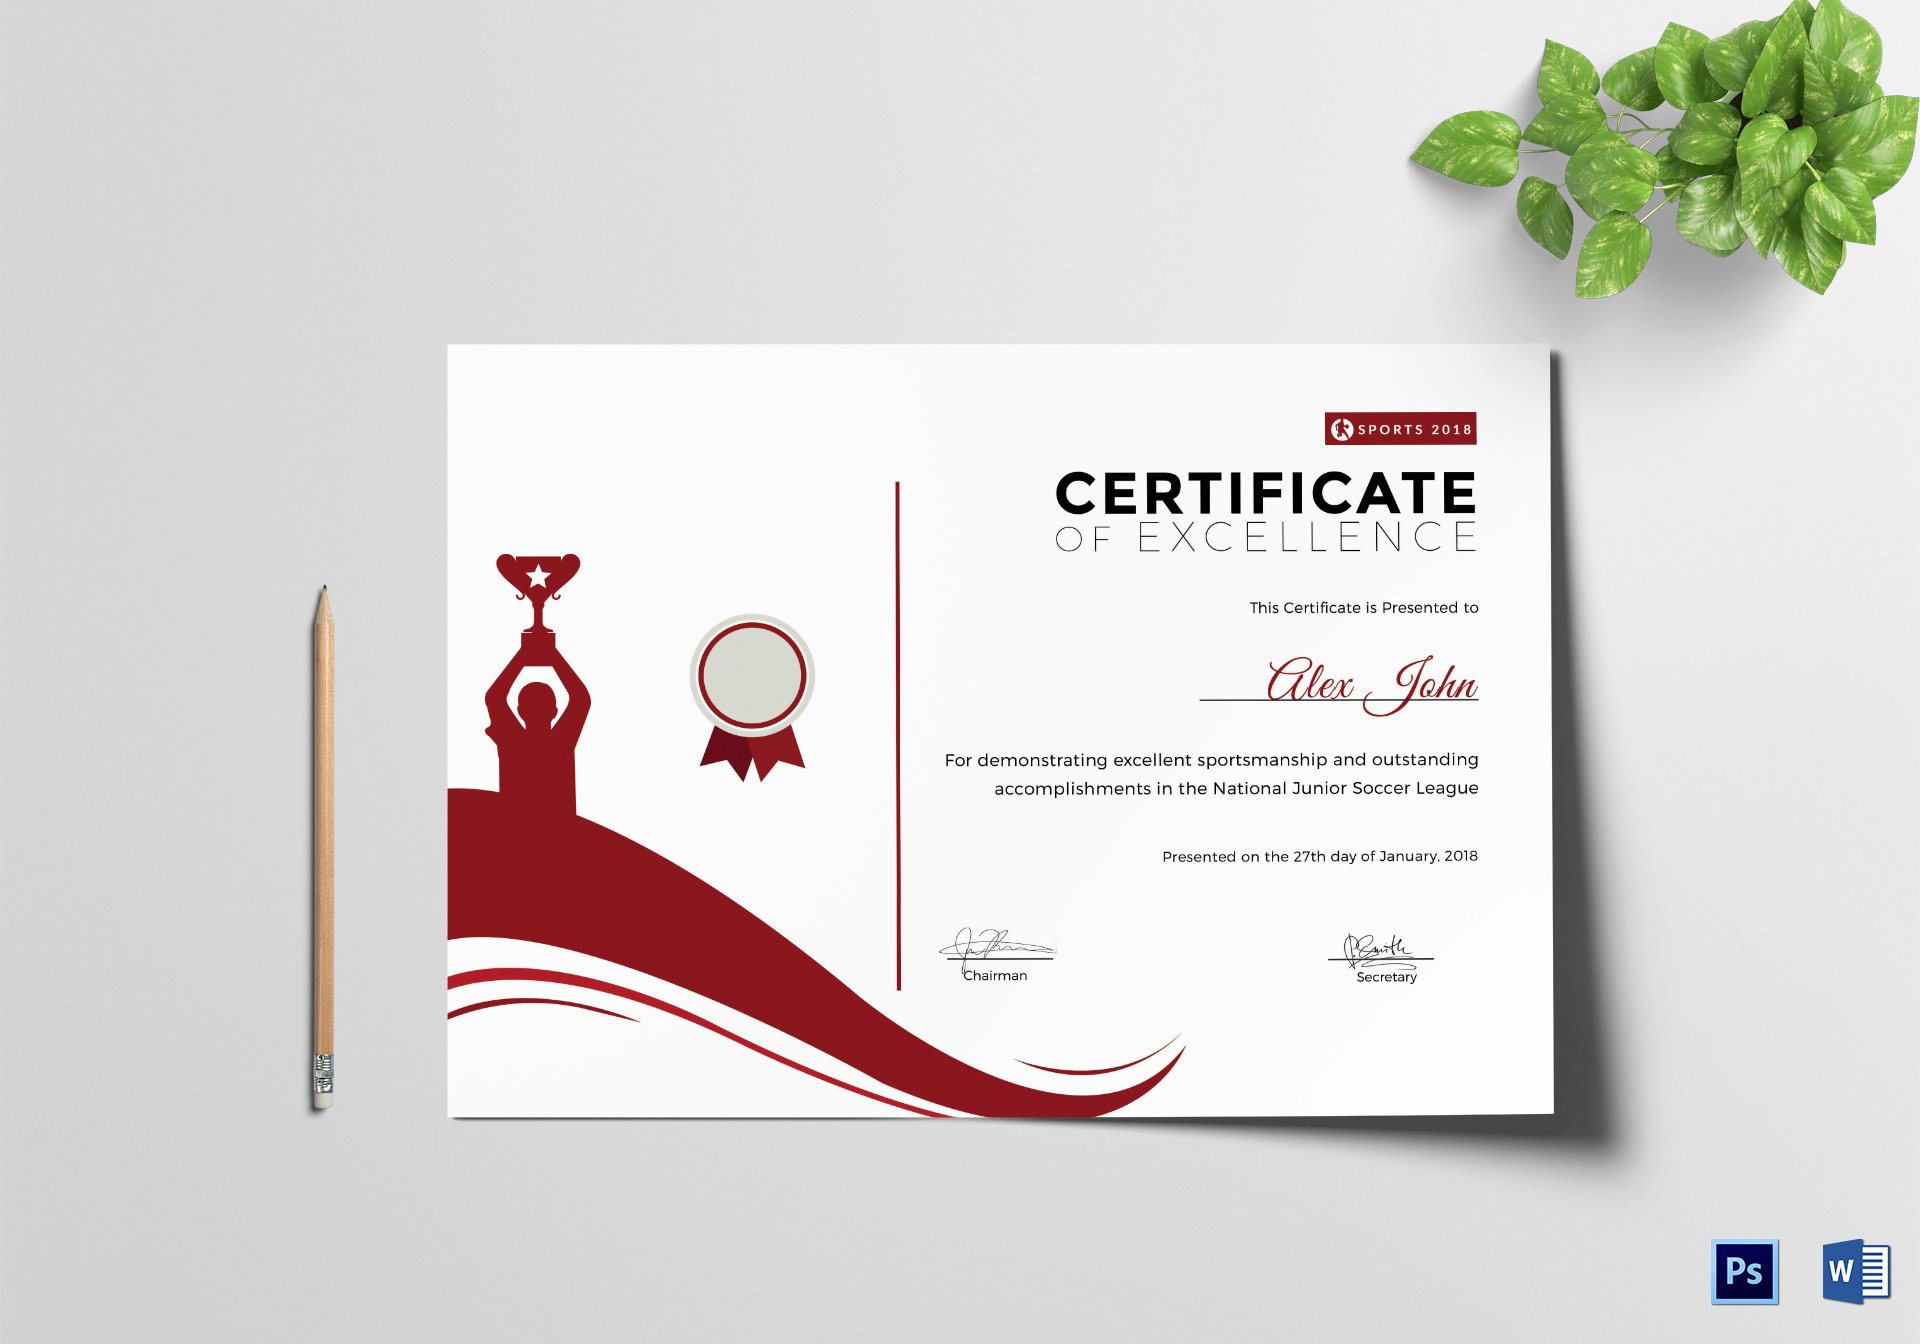 Sports Program Template Microsoft Word Best Of Sportsmanship Excellence Certificate Design Template In